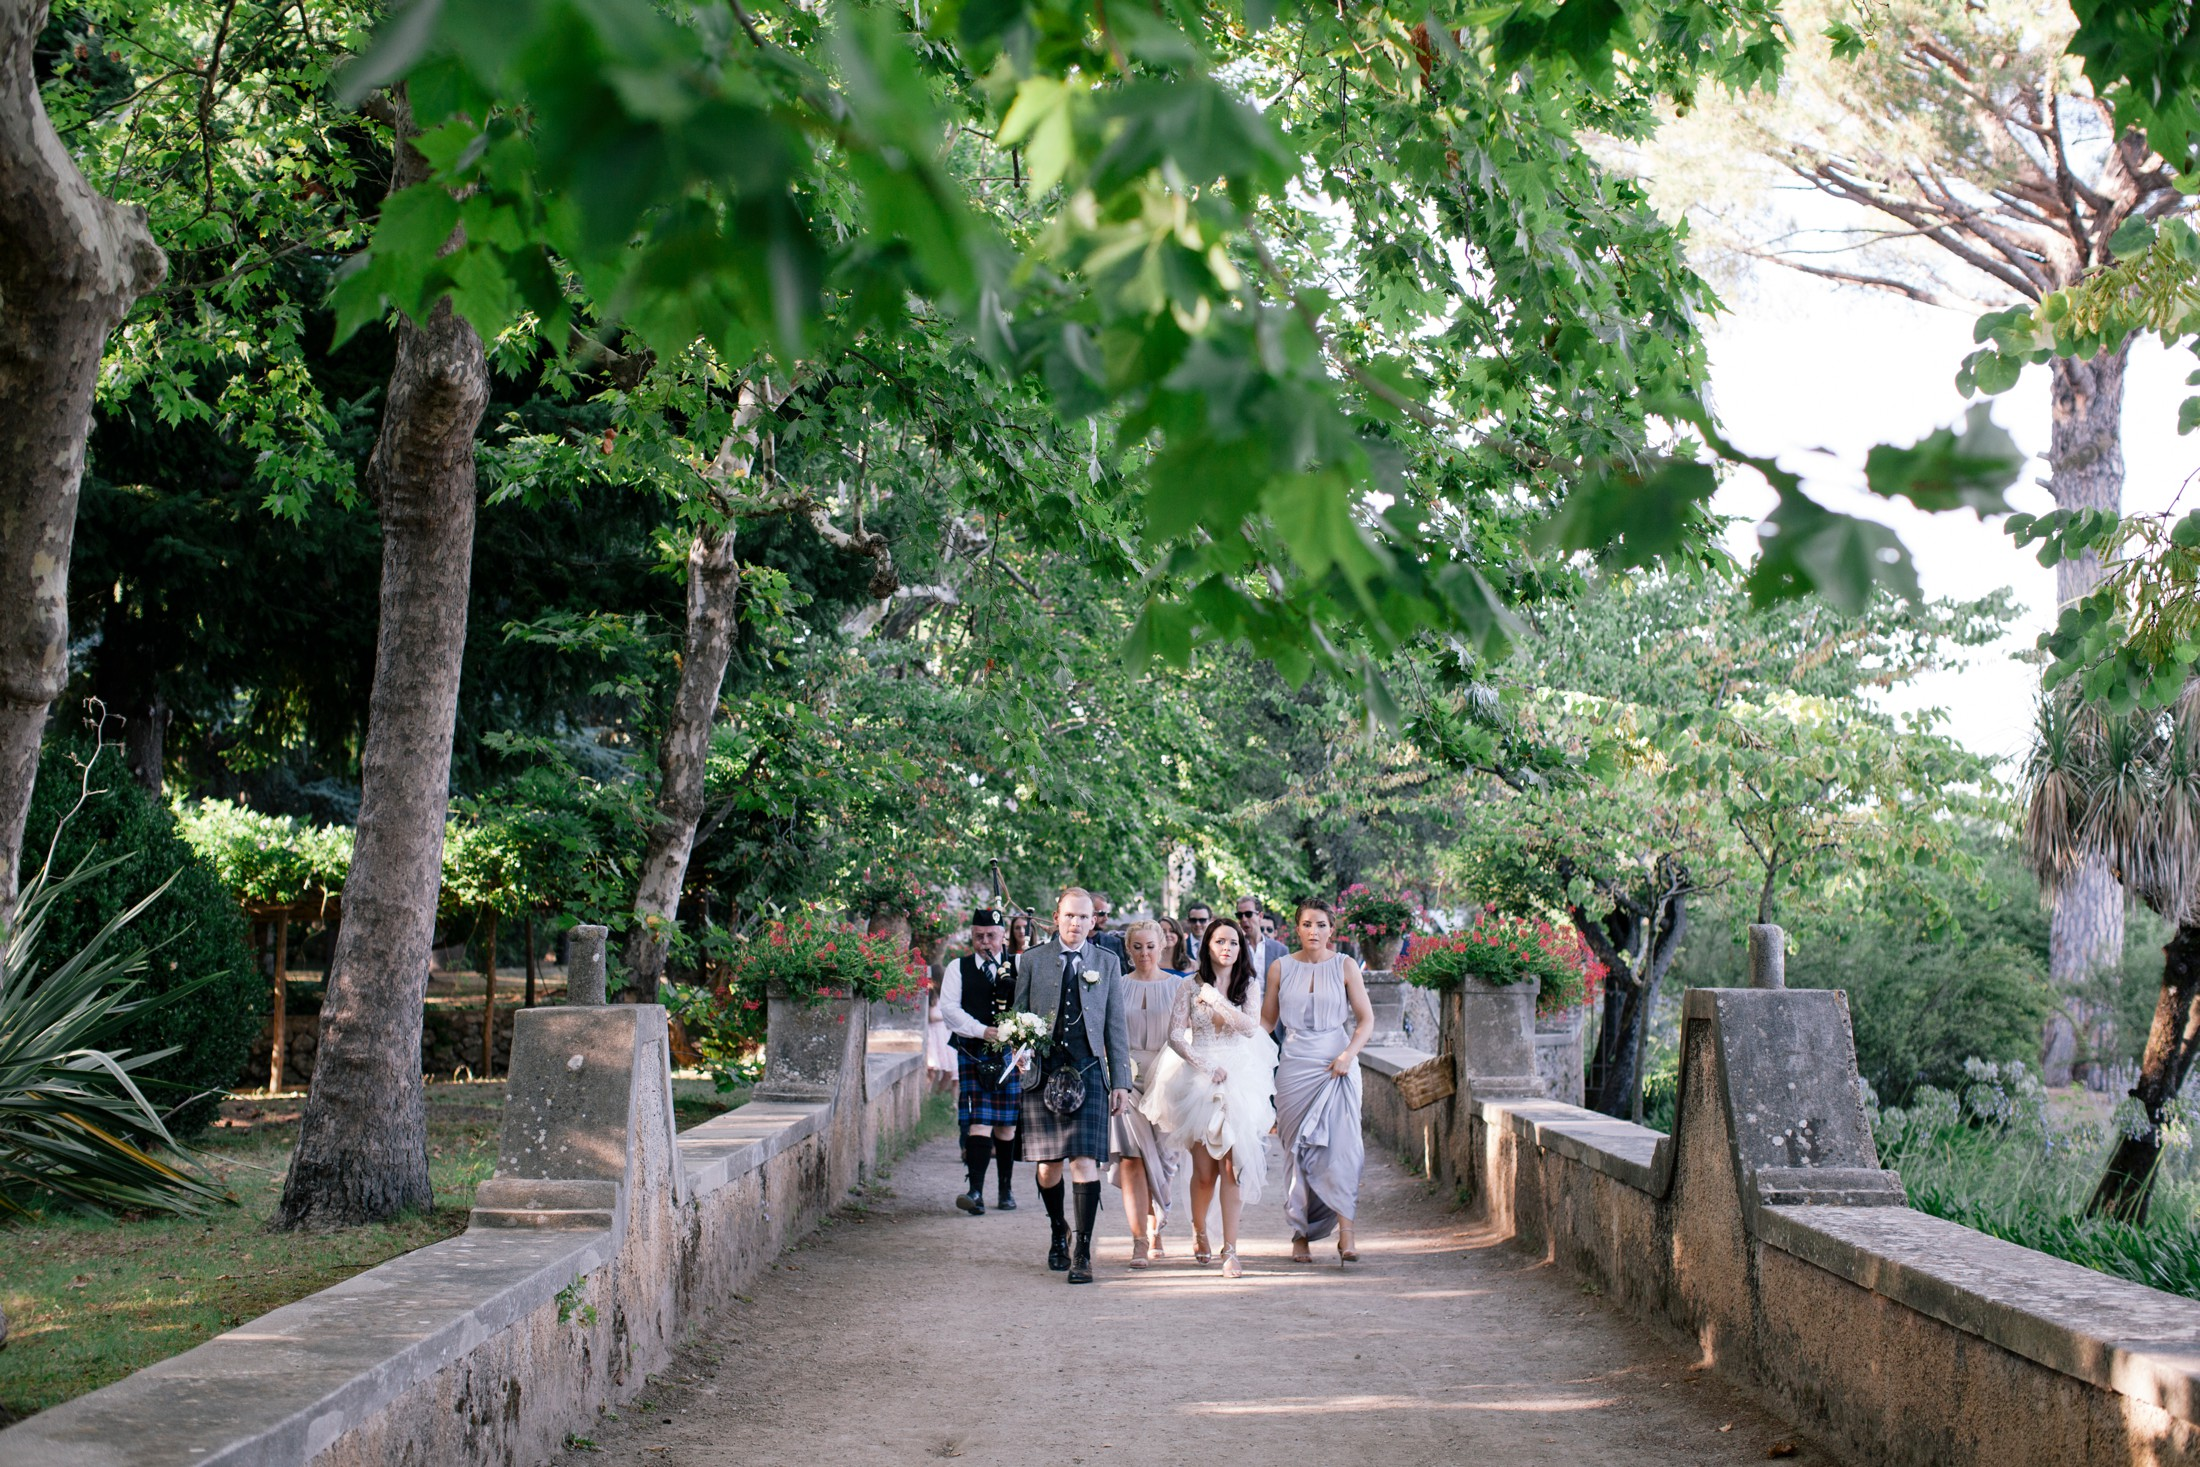 bride and groom with their wedding guests walking through villa cimbrone gardens in ravello